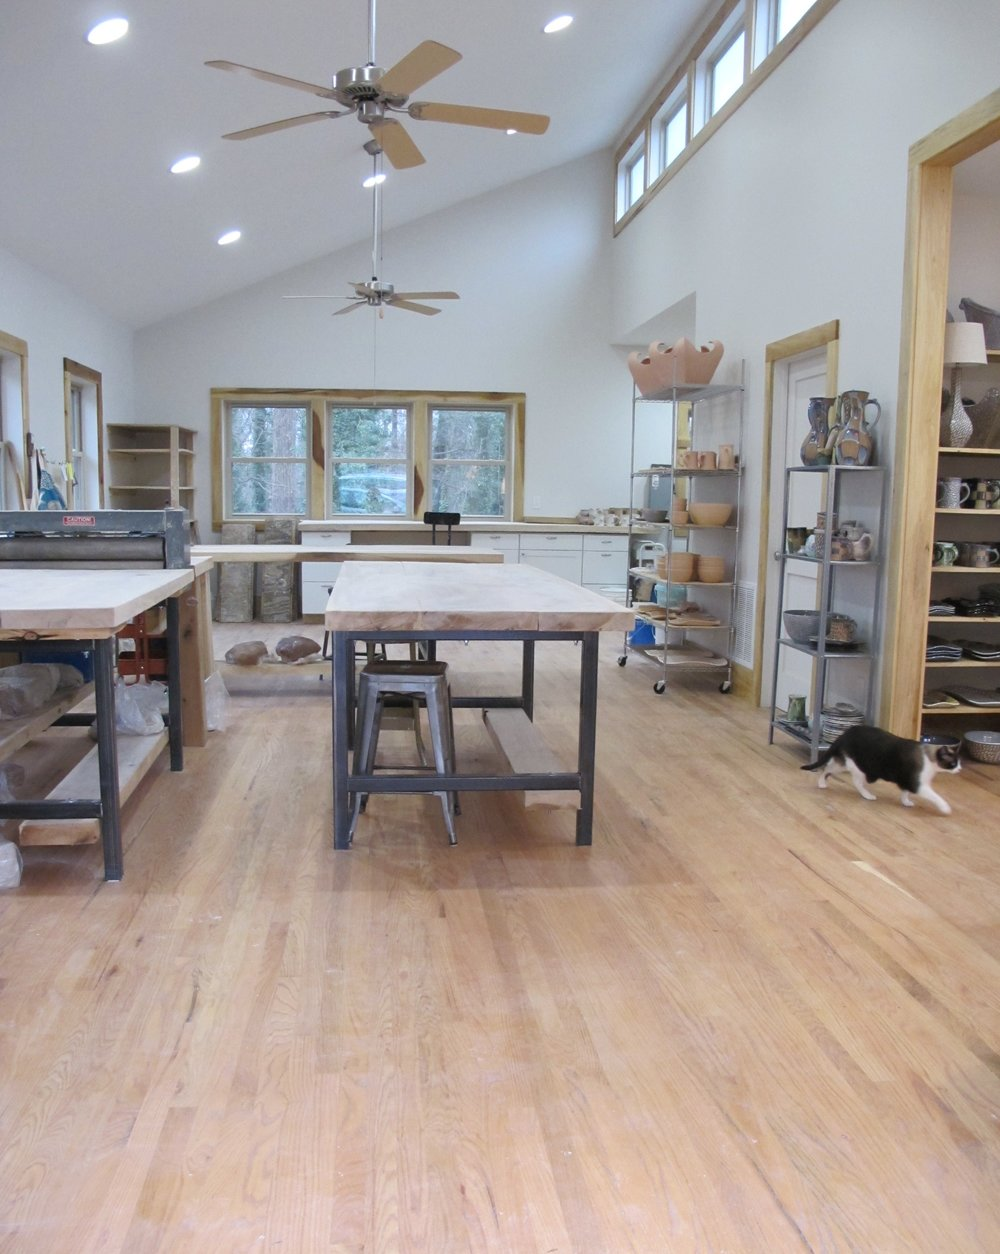 All accent wood, including the floors, tables, shelves and trim were made using the trees from our property.